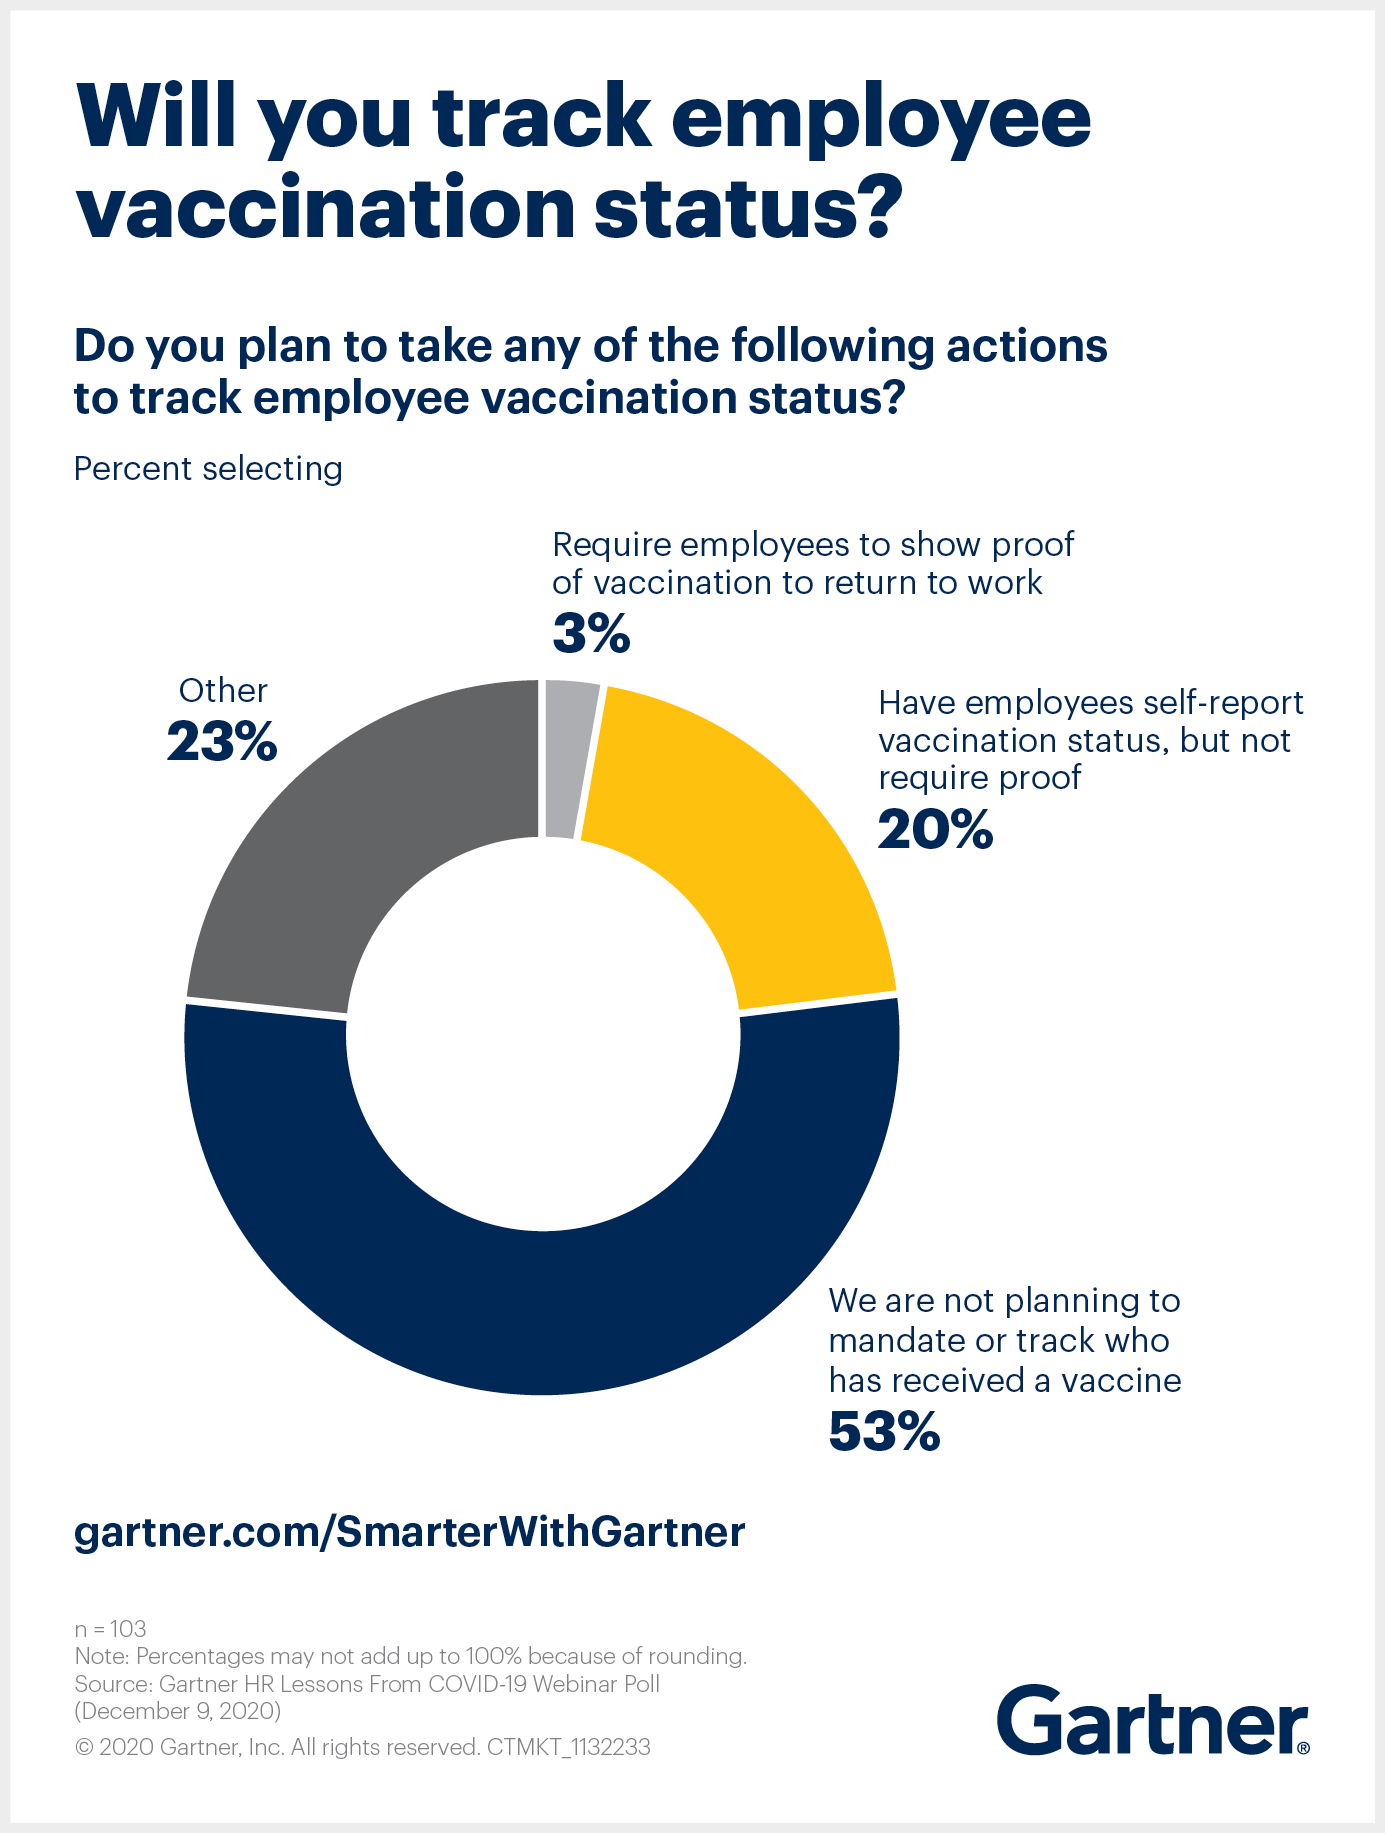 Gartner asks whether organizations will track the vaccine status of employees